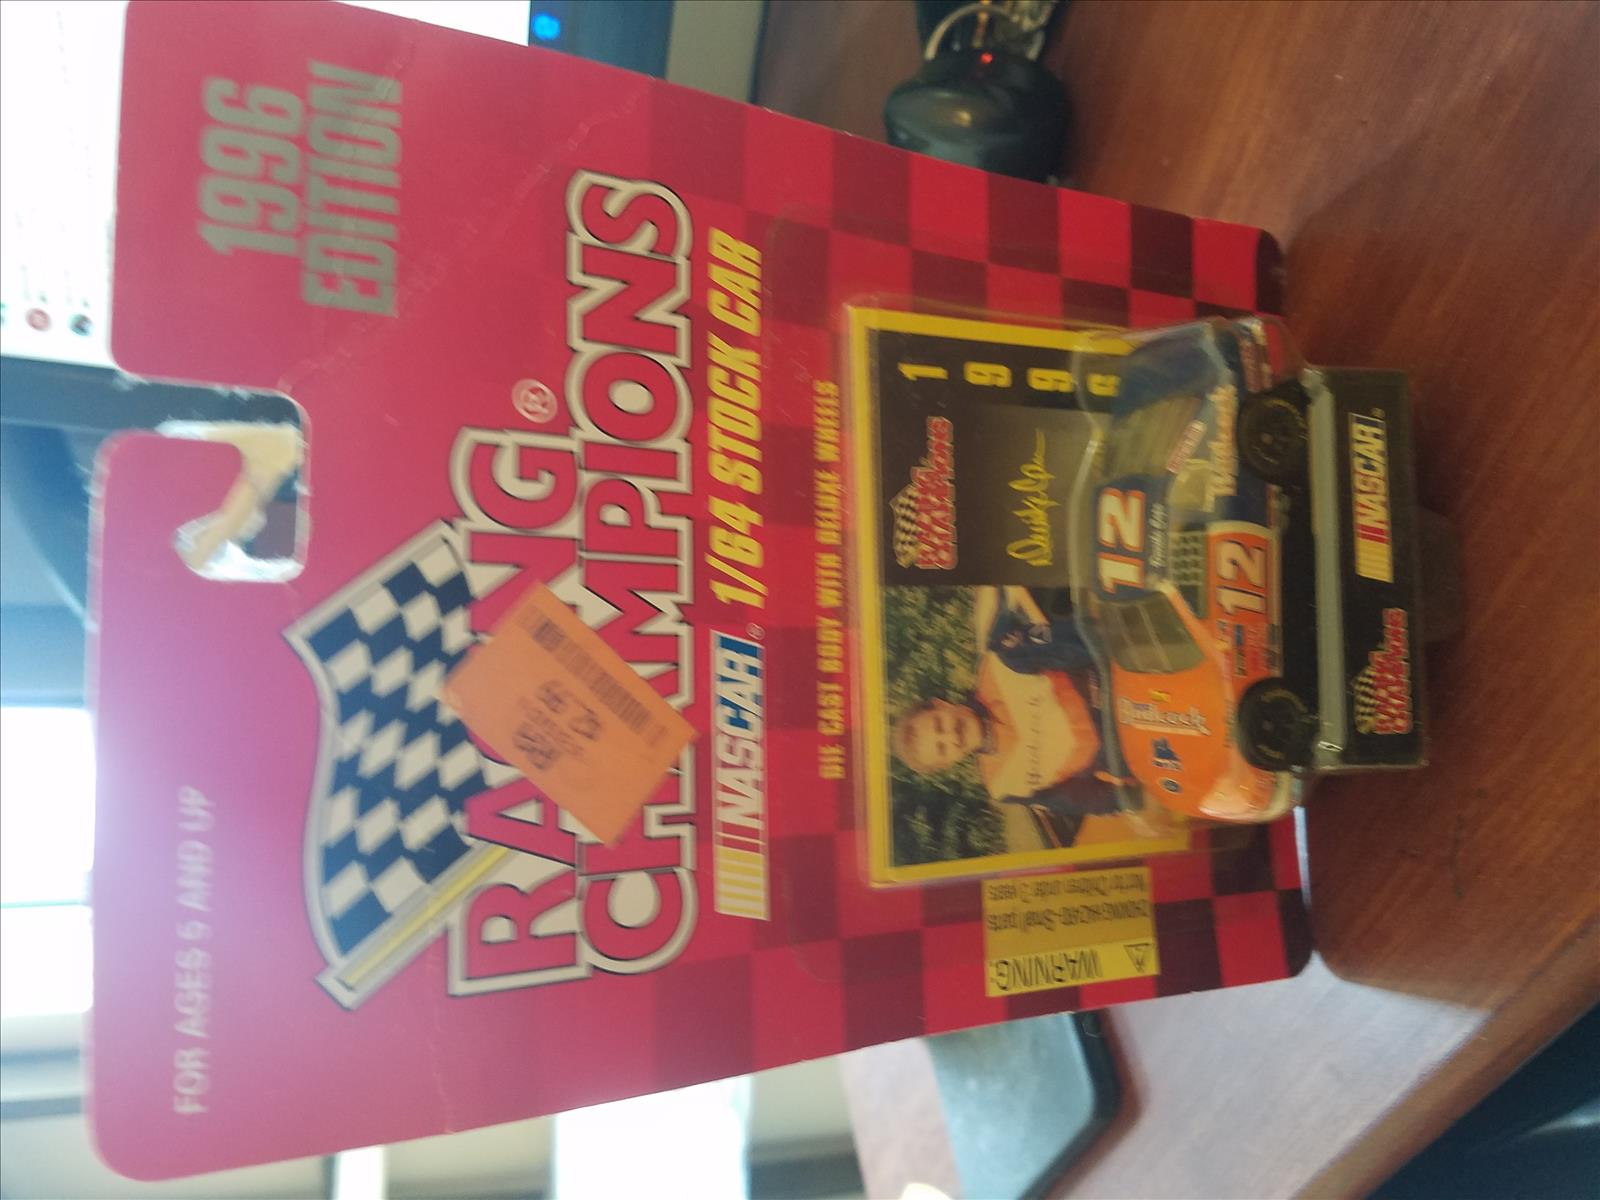 1996 Derrike Cope NASCAR Diecast 12 Badcock CWC 1:64 Racing Champions 1996 Edition 1